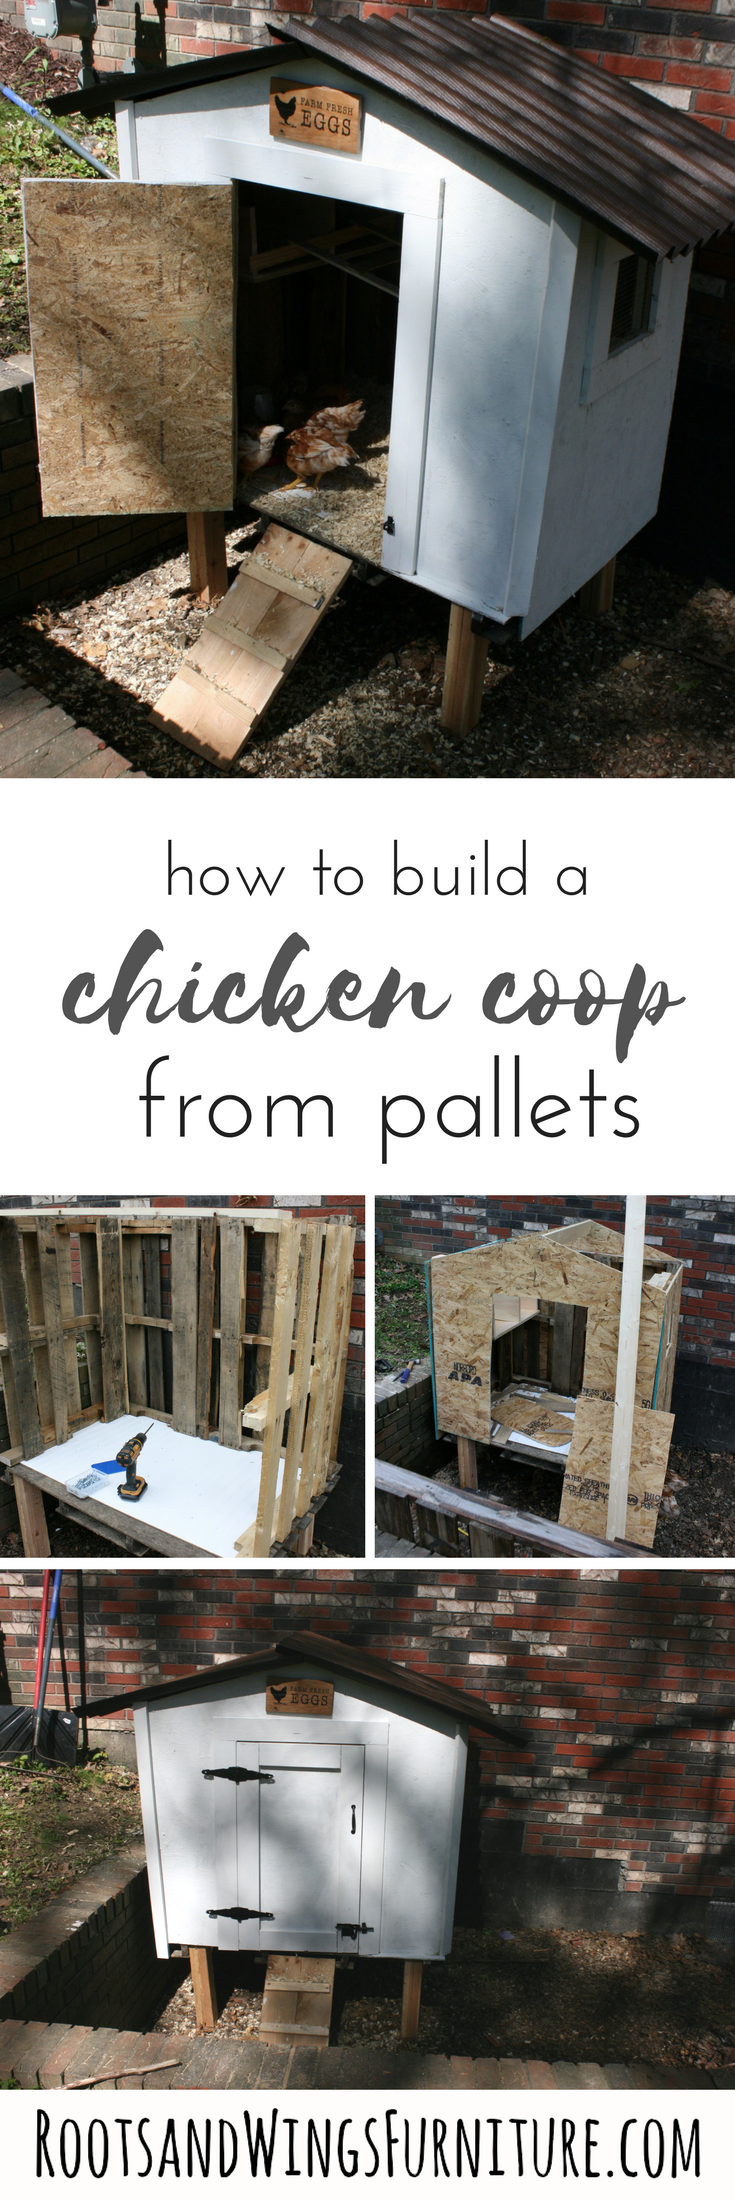 http://www.rootsandwingsfurniture.com/blog/chickencoop